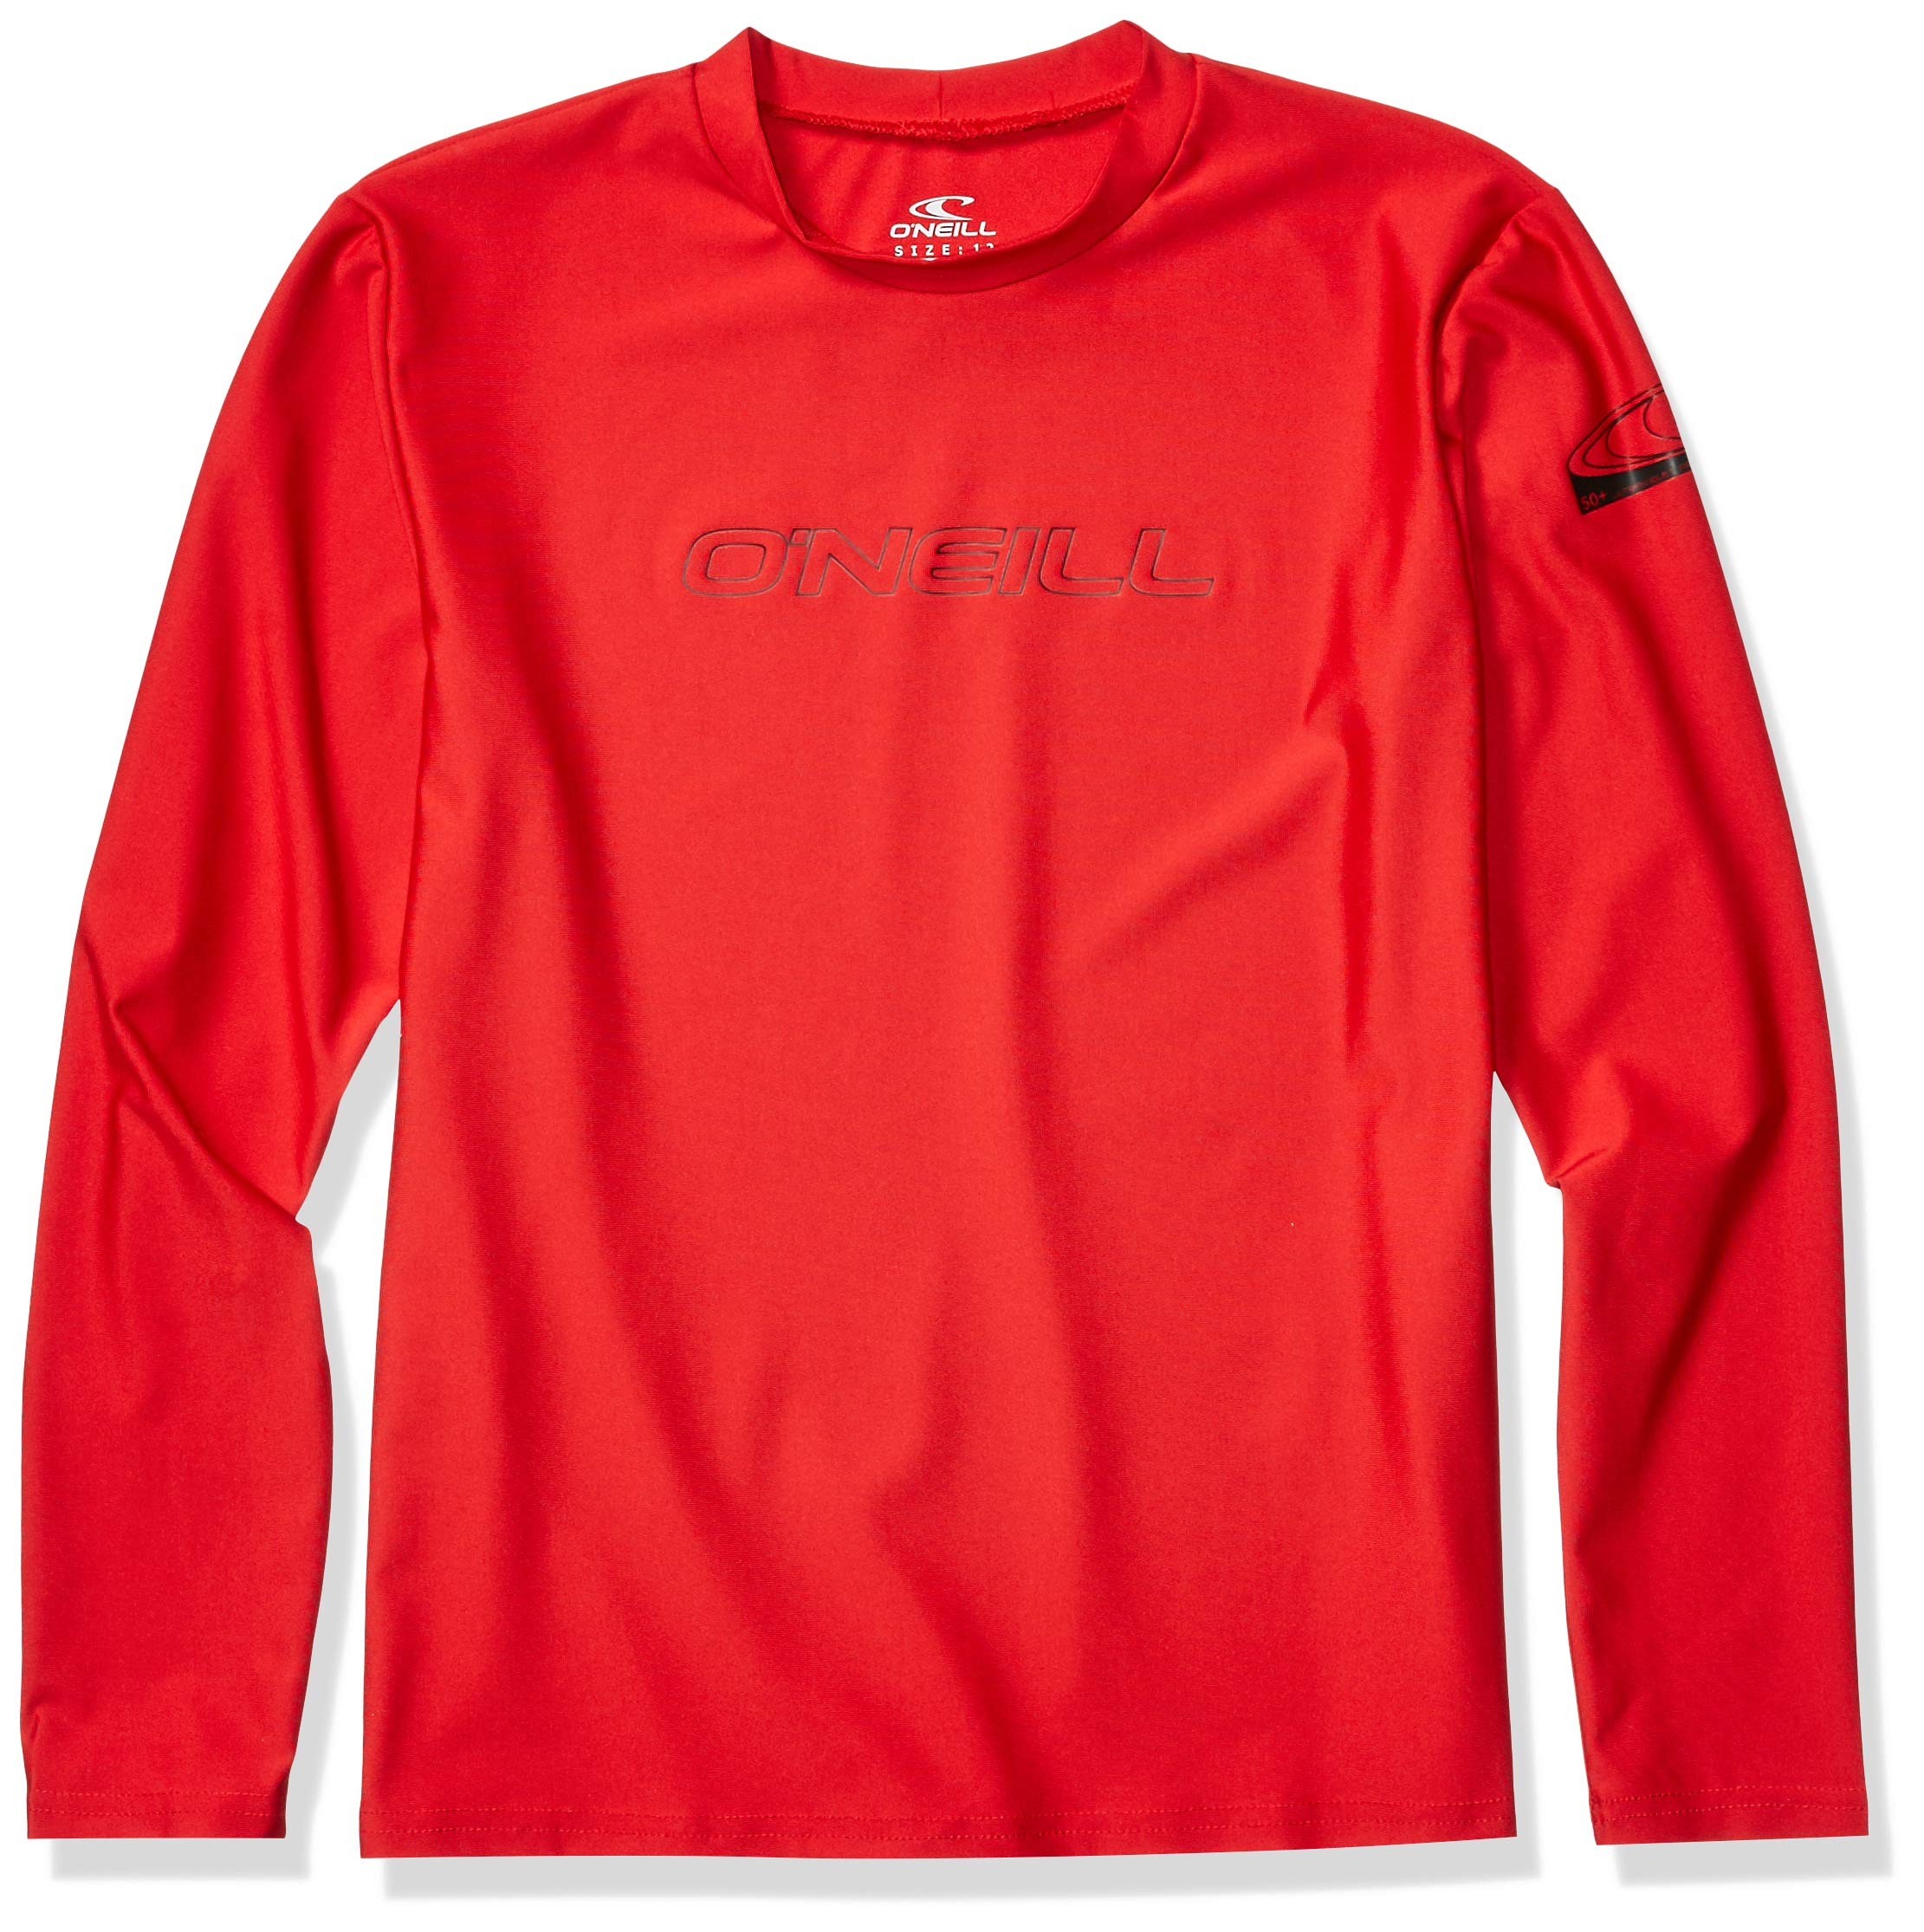 O'Neill Wetsuits Youth Basic Skins UPF 50+ Long Sleeve Sun Shirt, Red, Size 6